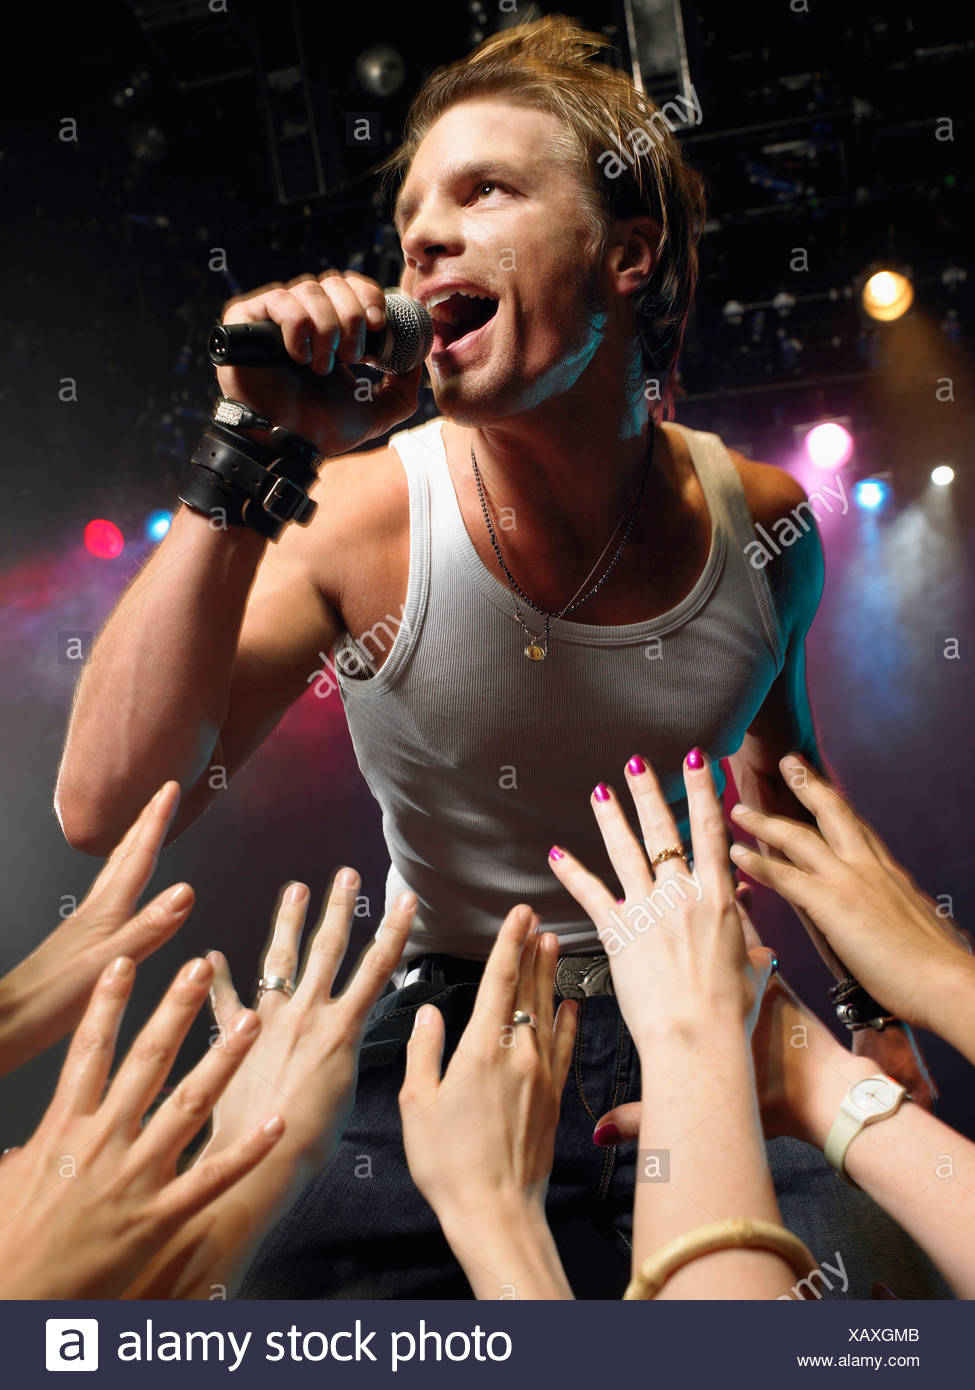 Low angle view of male rock star singing on stage with adoring fans reaching their hands up towards him - Stock Image